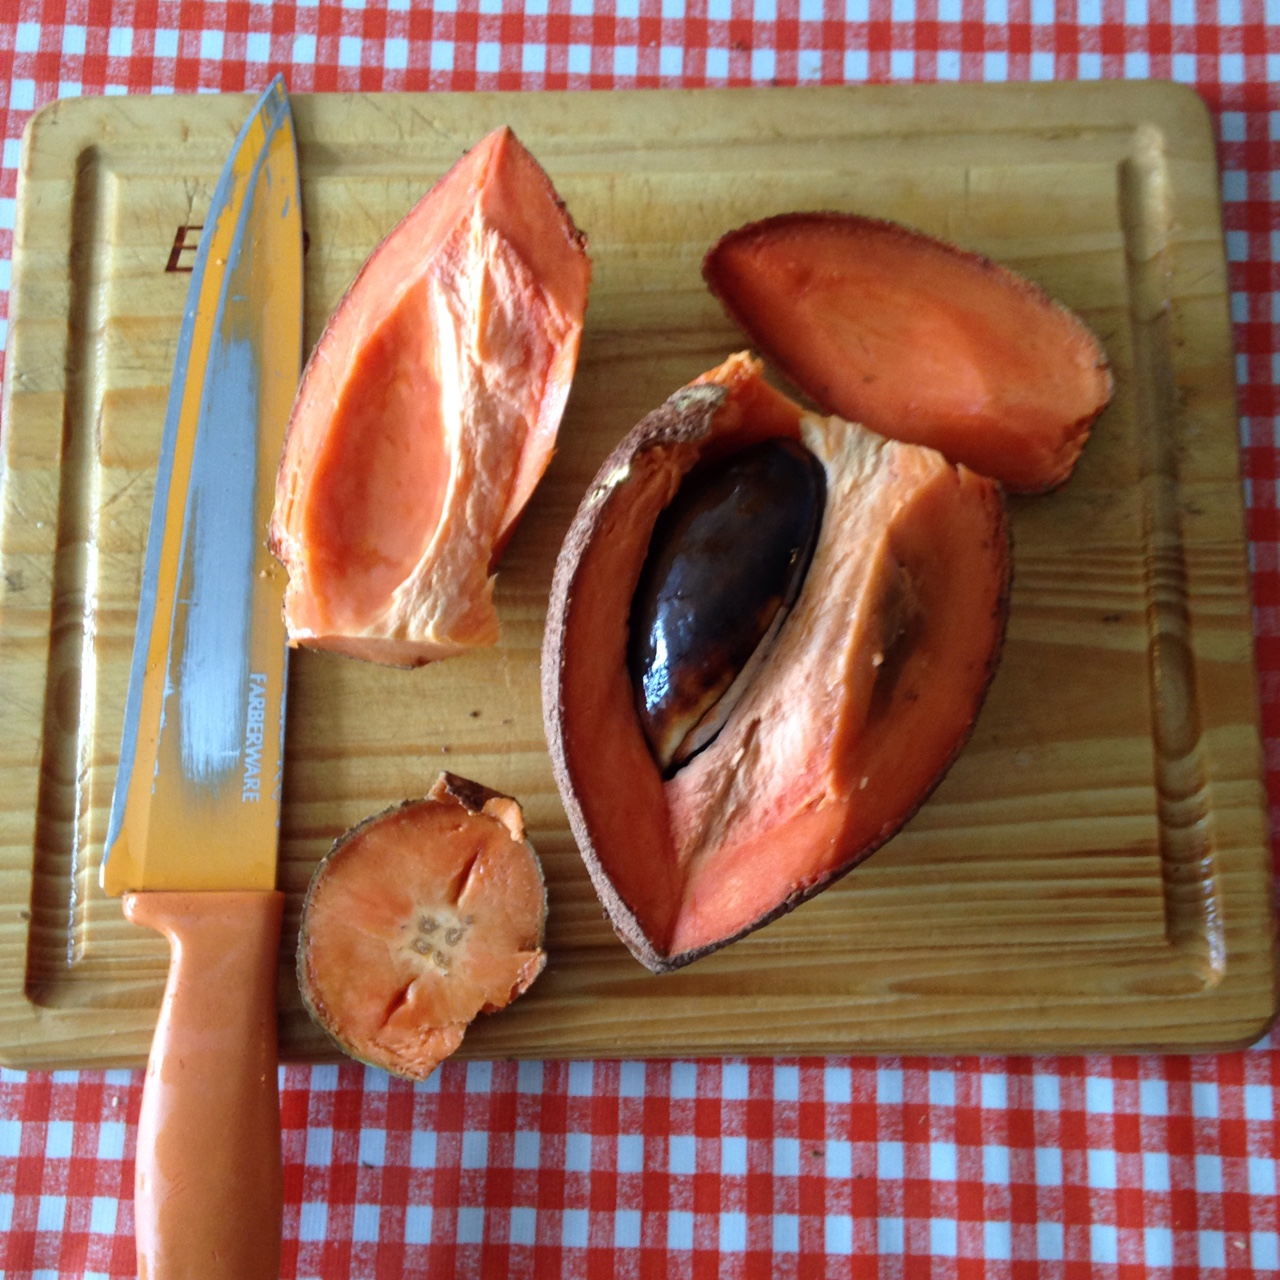 Mamey sapote (ma-MAY zap-OTAY) from the Mercado Coyoacan. It has soft, creamy flesh like a papaya, and a delicate, sweet flavour.